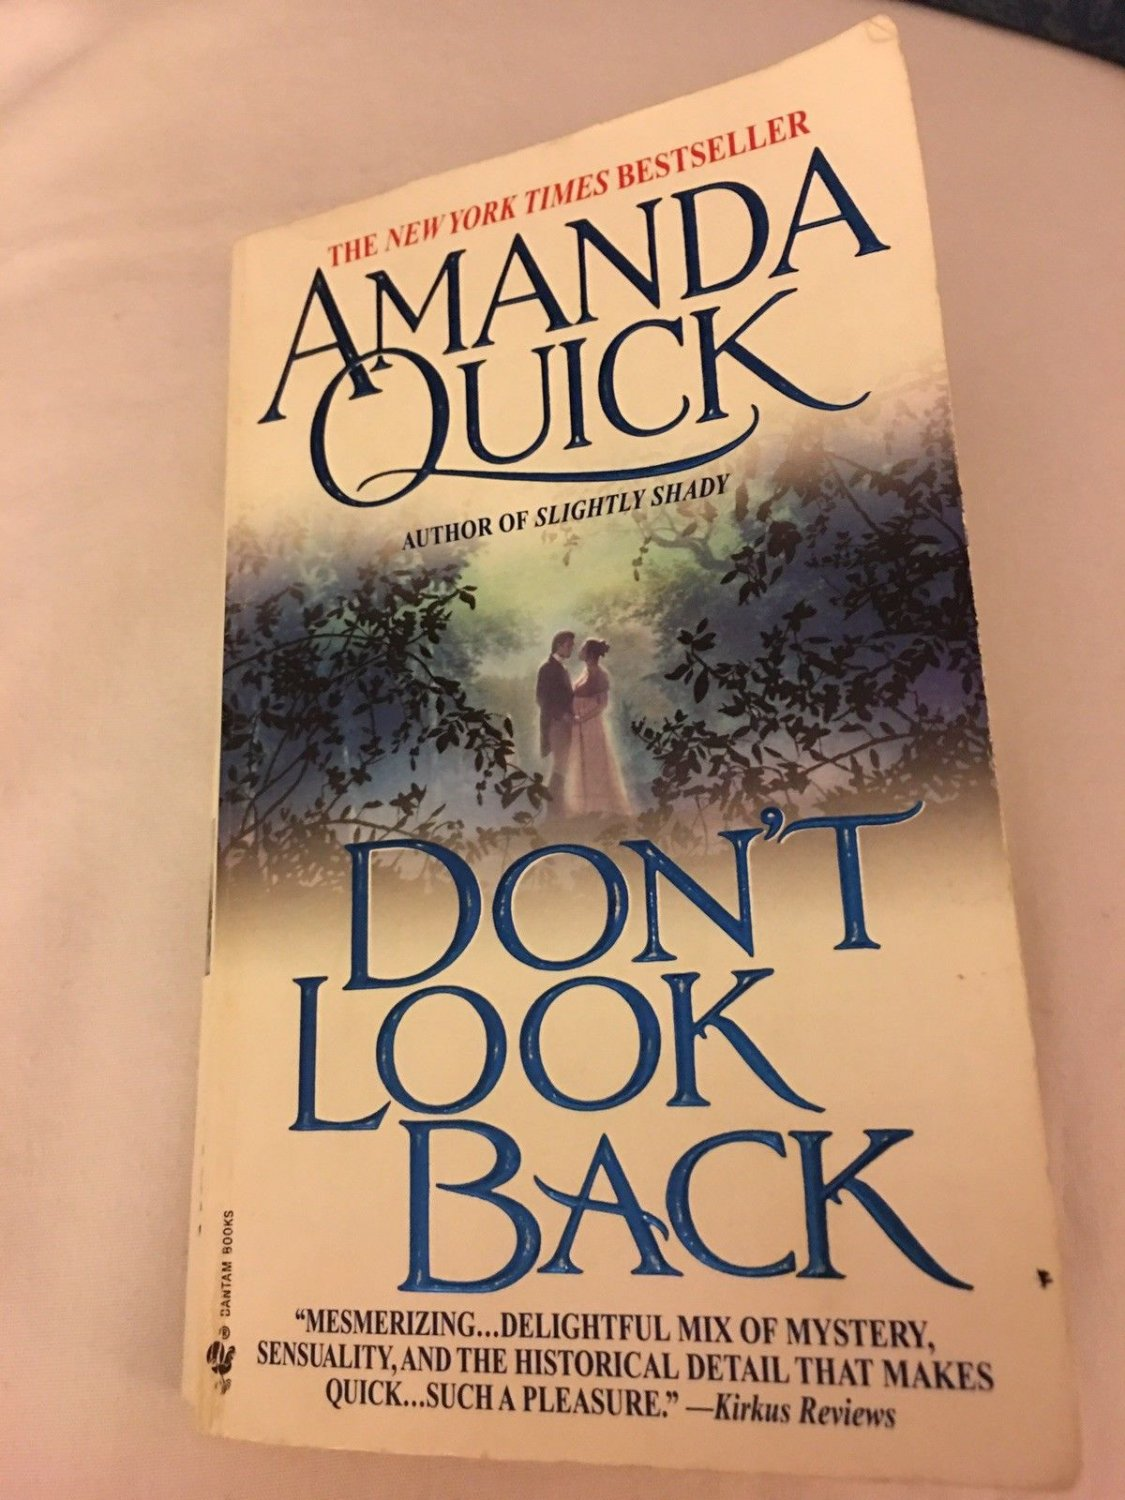 DON'T LOOK BACK IN PAPERBACK BY AMANDA QUICK BOOK 2 LAVINIA LAKE & TOBIAS MARCH